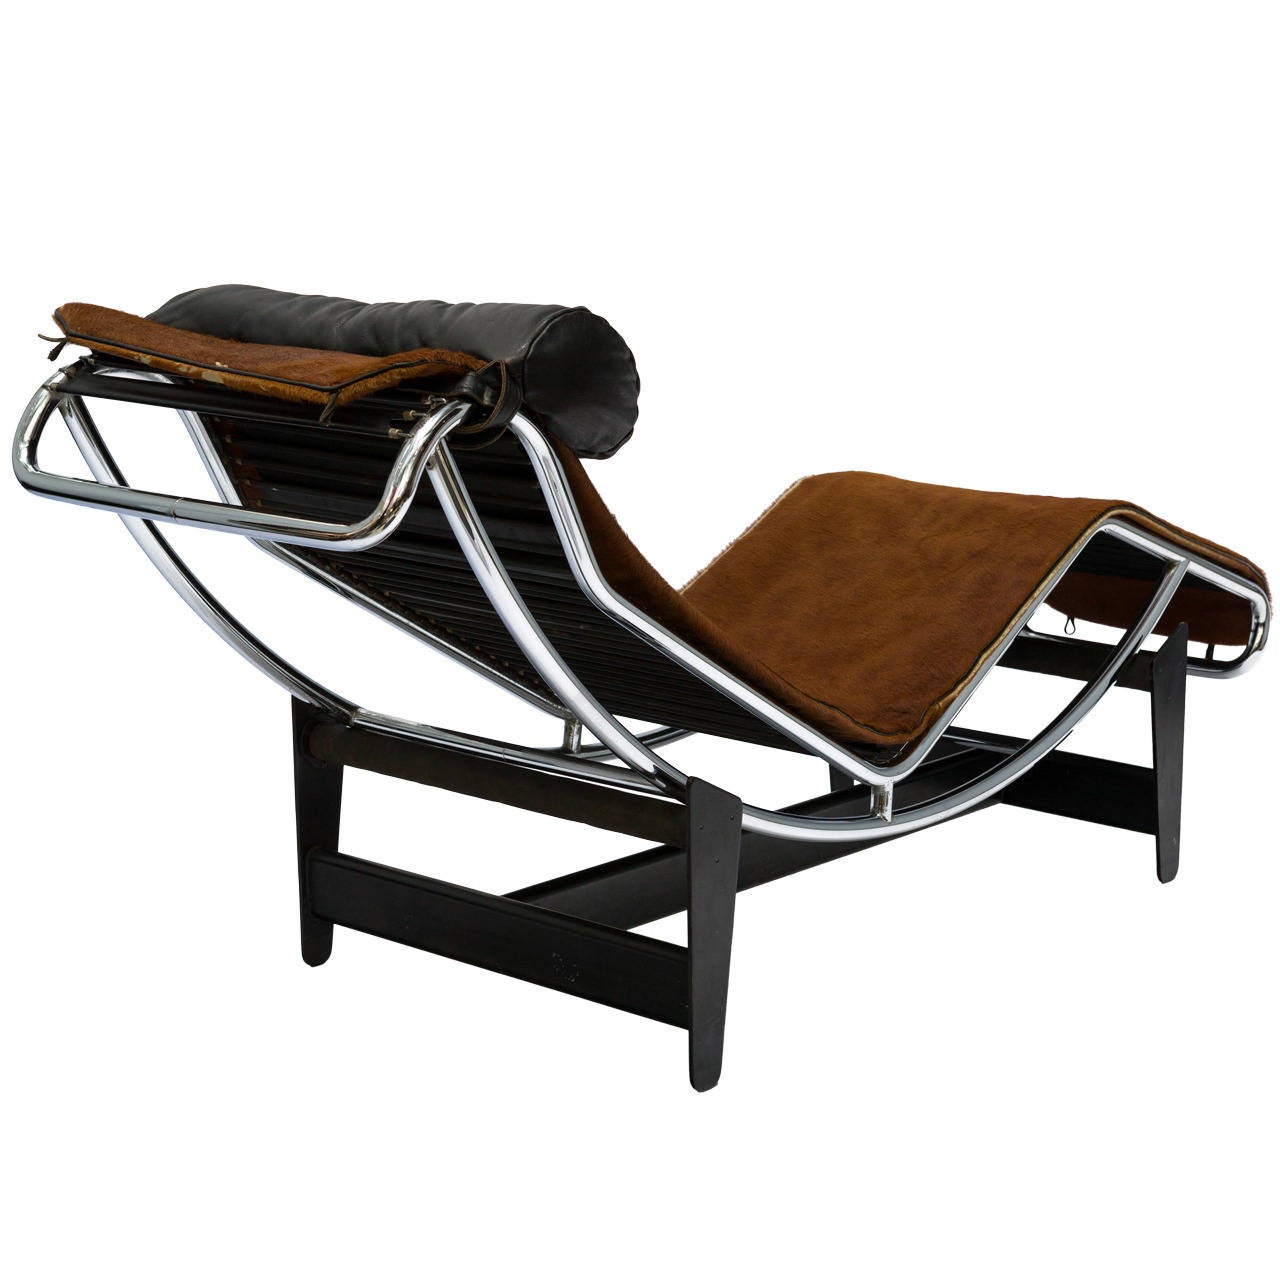 le corbusier lc4 chaise lounge chair in cowhide for sale